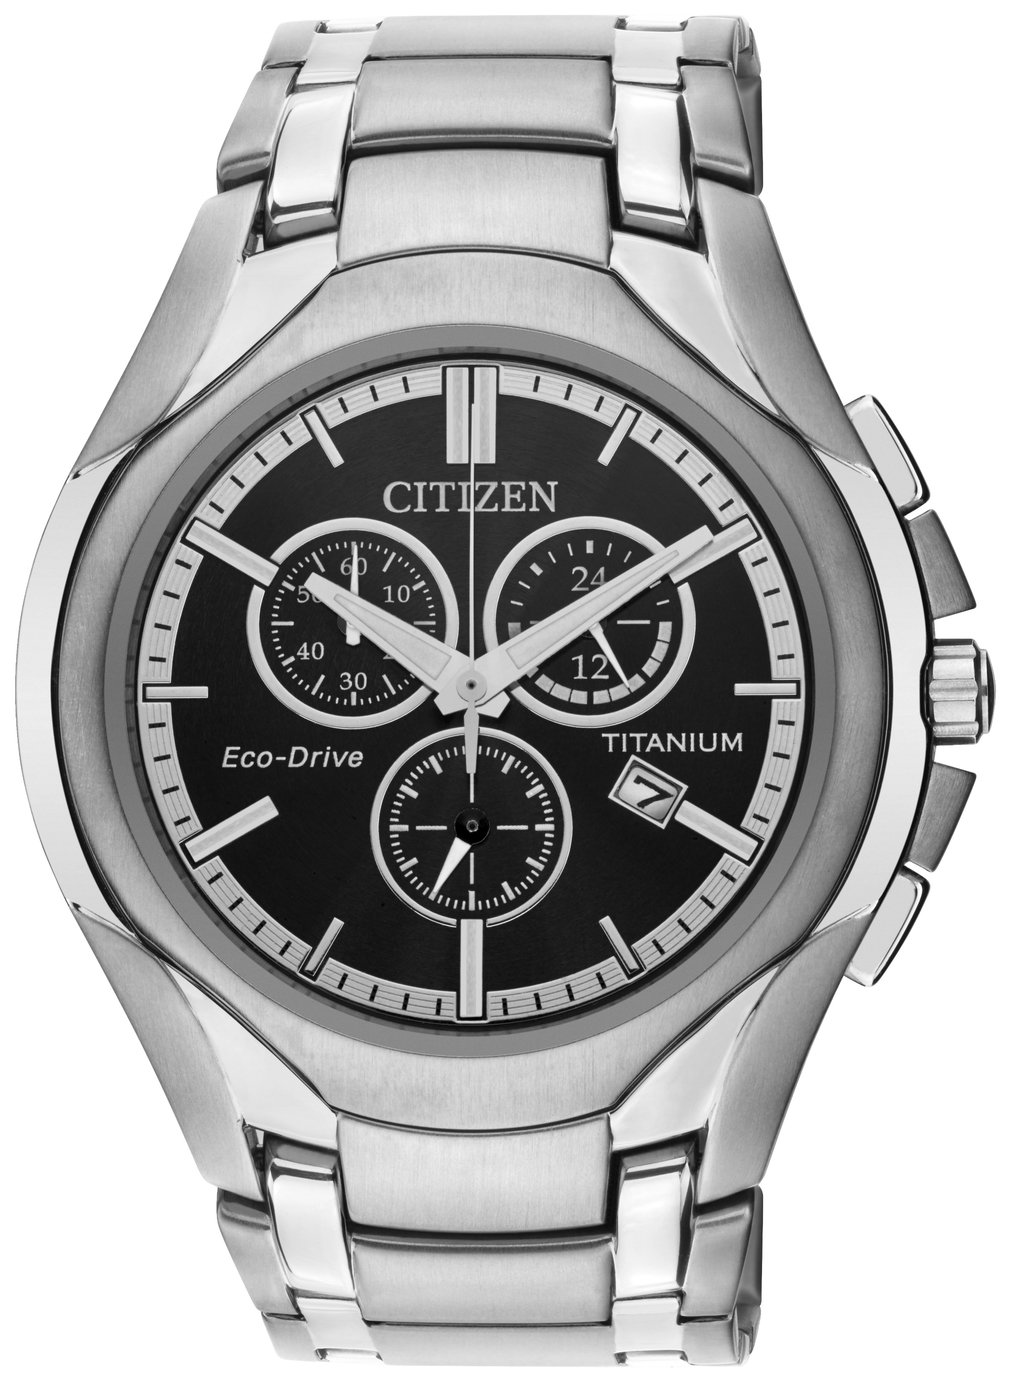 Citizen Eco-Drive Men's Silver Titanium Chronograph Watch